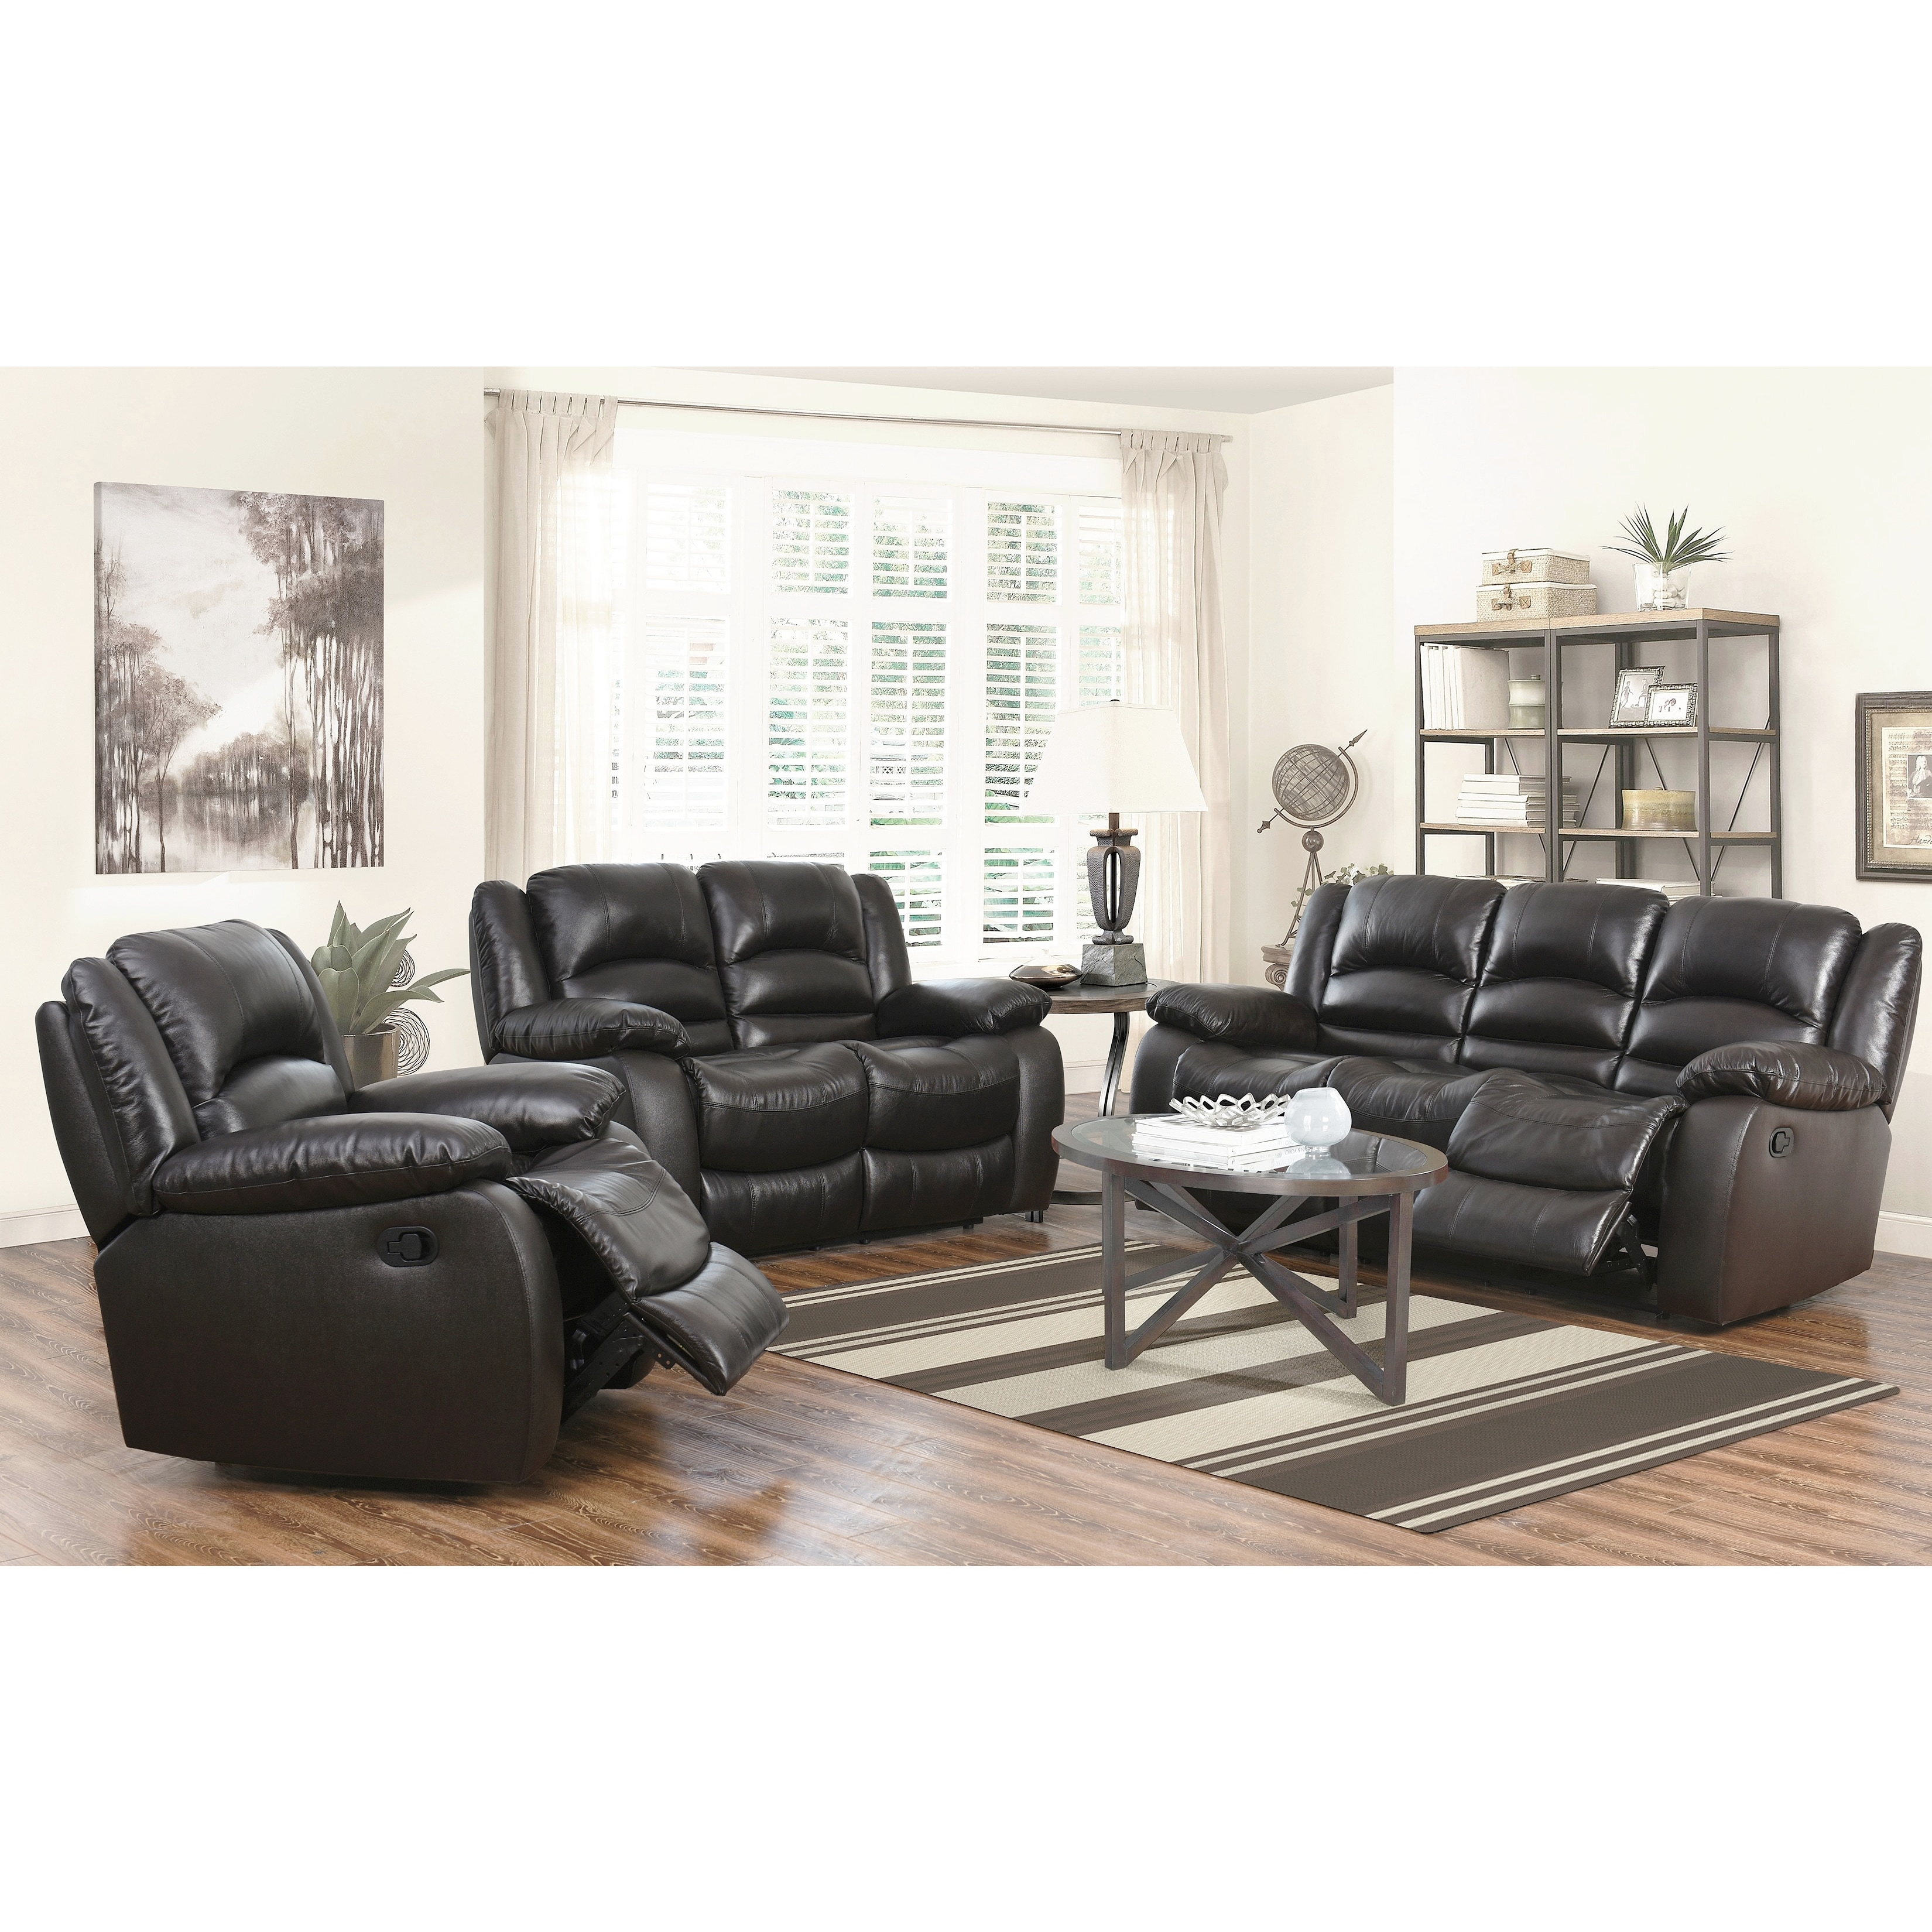 Cool Abbyson Brownstone Top Grain Leather Reclining 3 Piece Living Room Set Ncnpc Chair Design For Home Ncnpcorg